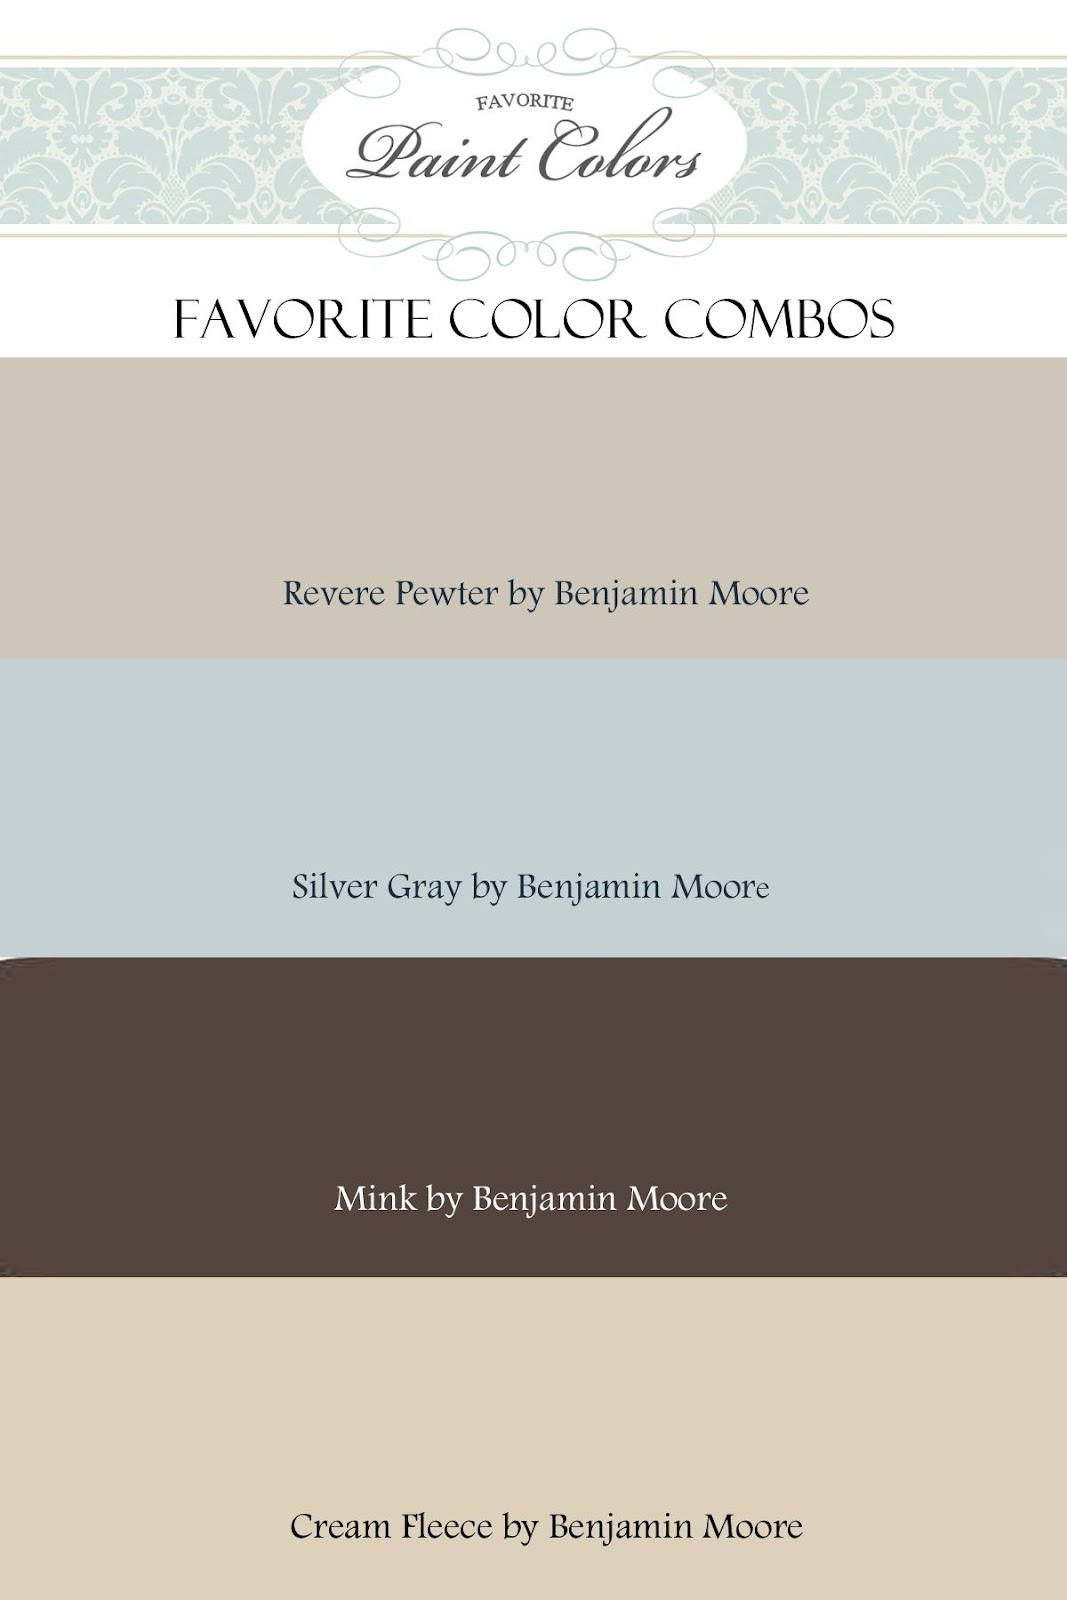 Painting Kitchen Cabinets Blue Color Combination For Revere Pewter Favorite Paint